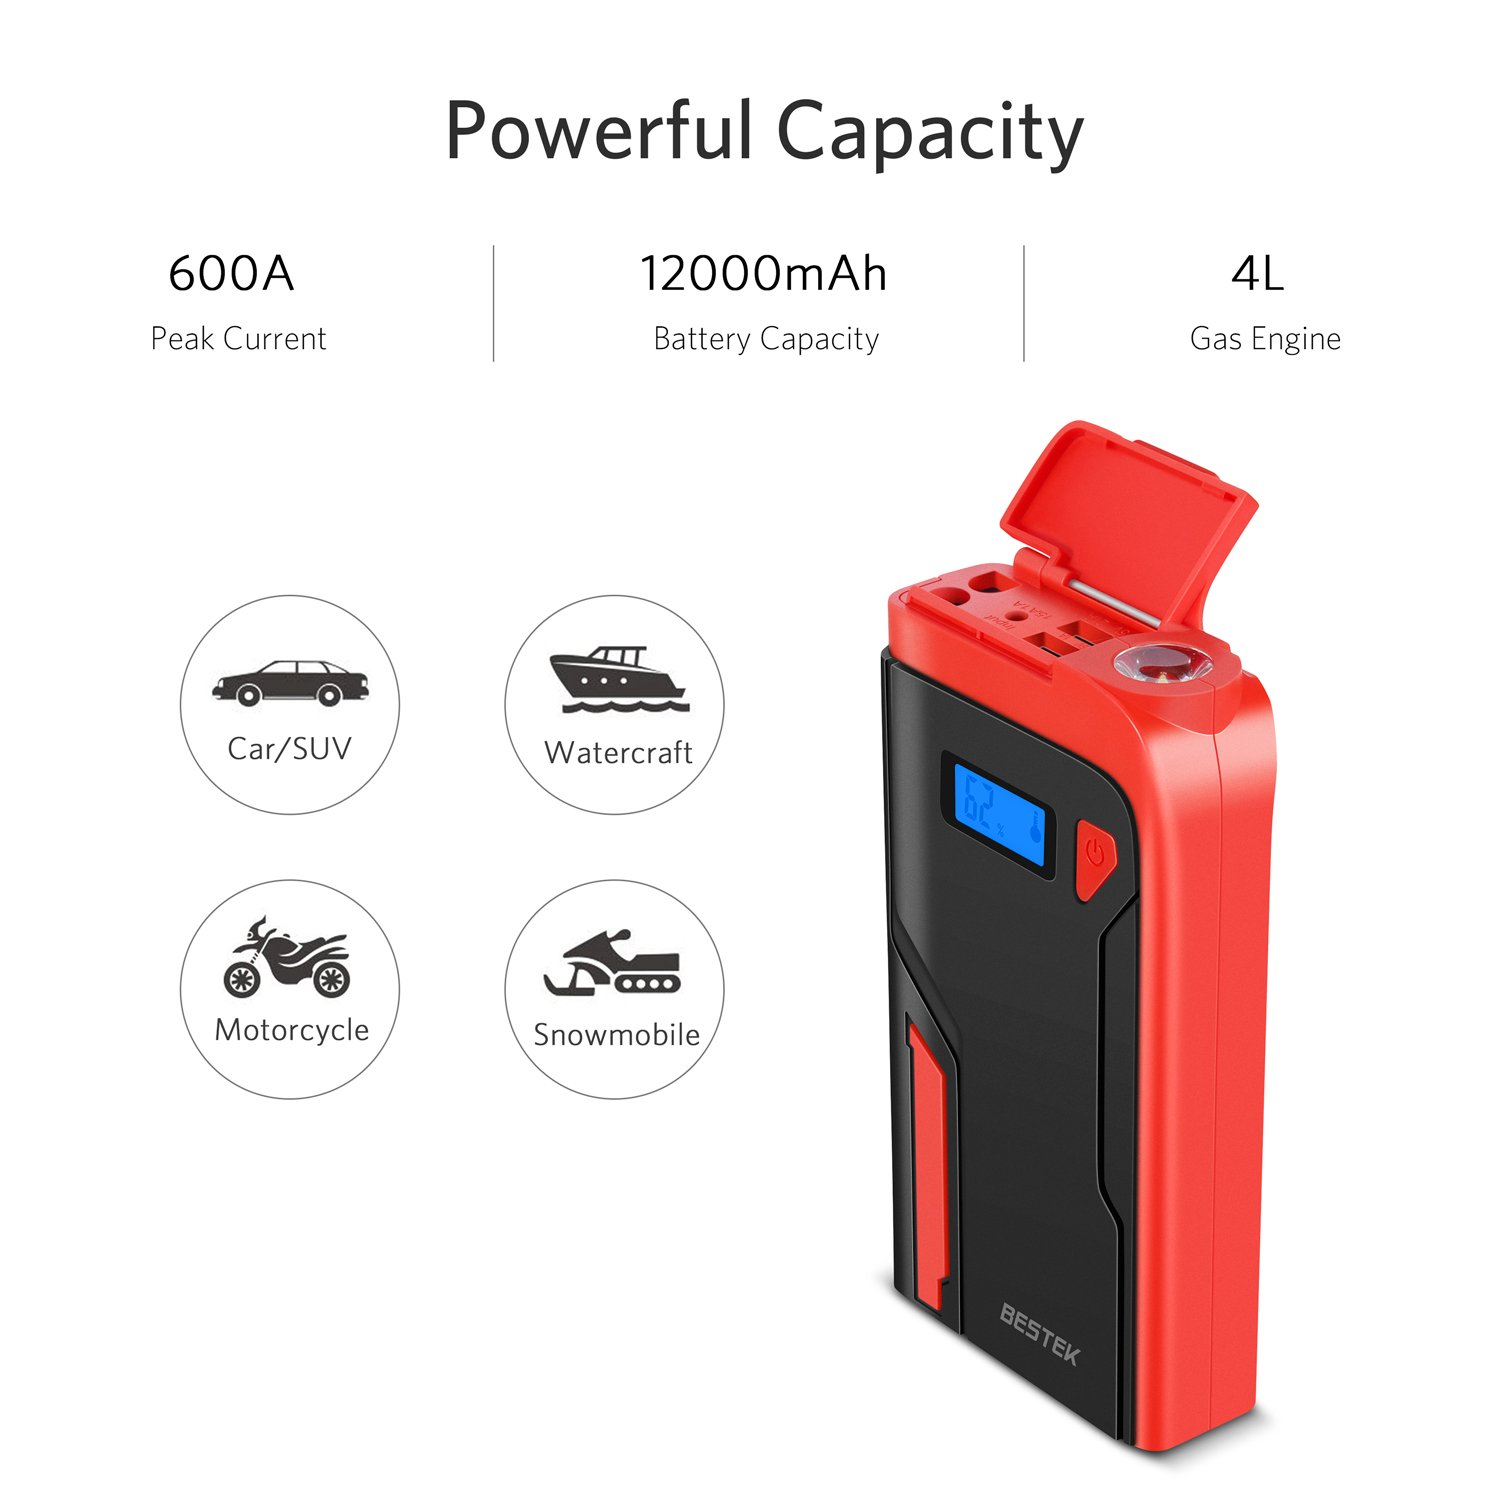 Car Jump Starter, BESTEK 400A 12000mAh 12V Portable Auto Battery Booster Pack, Power Bank with Dual USB Ports LED Light LCD Screen by BESTEK (Image #2)